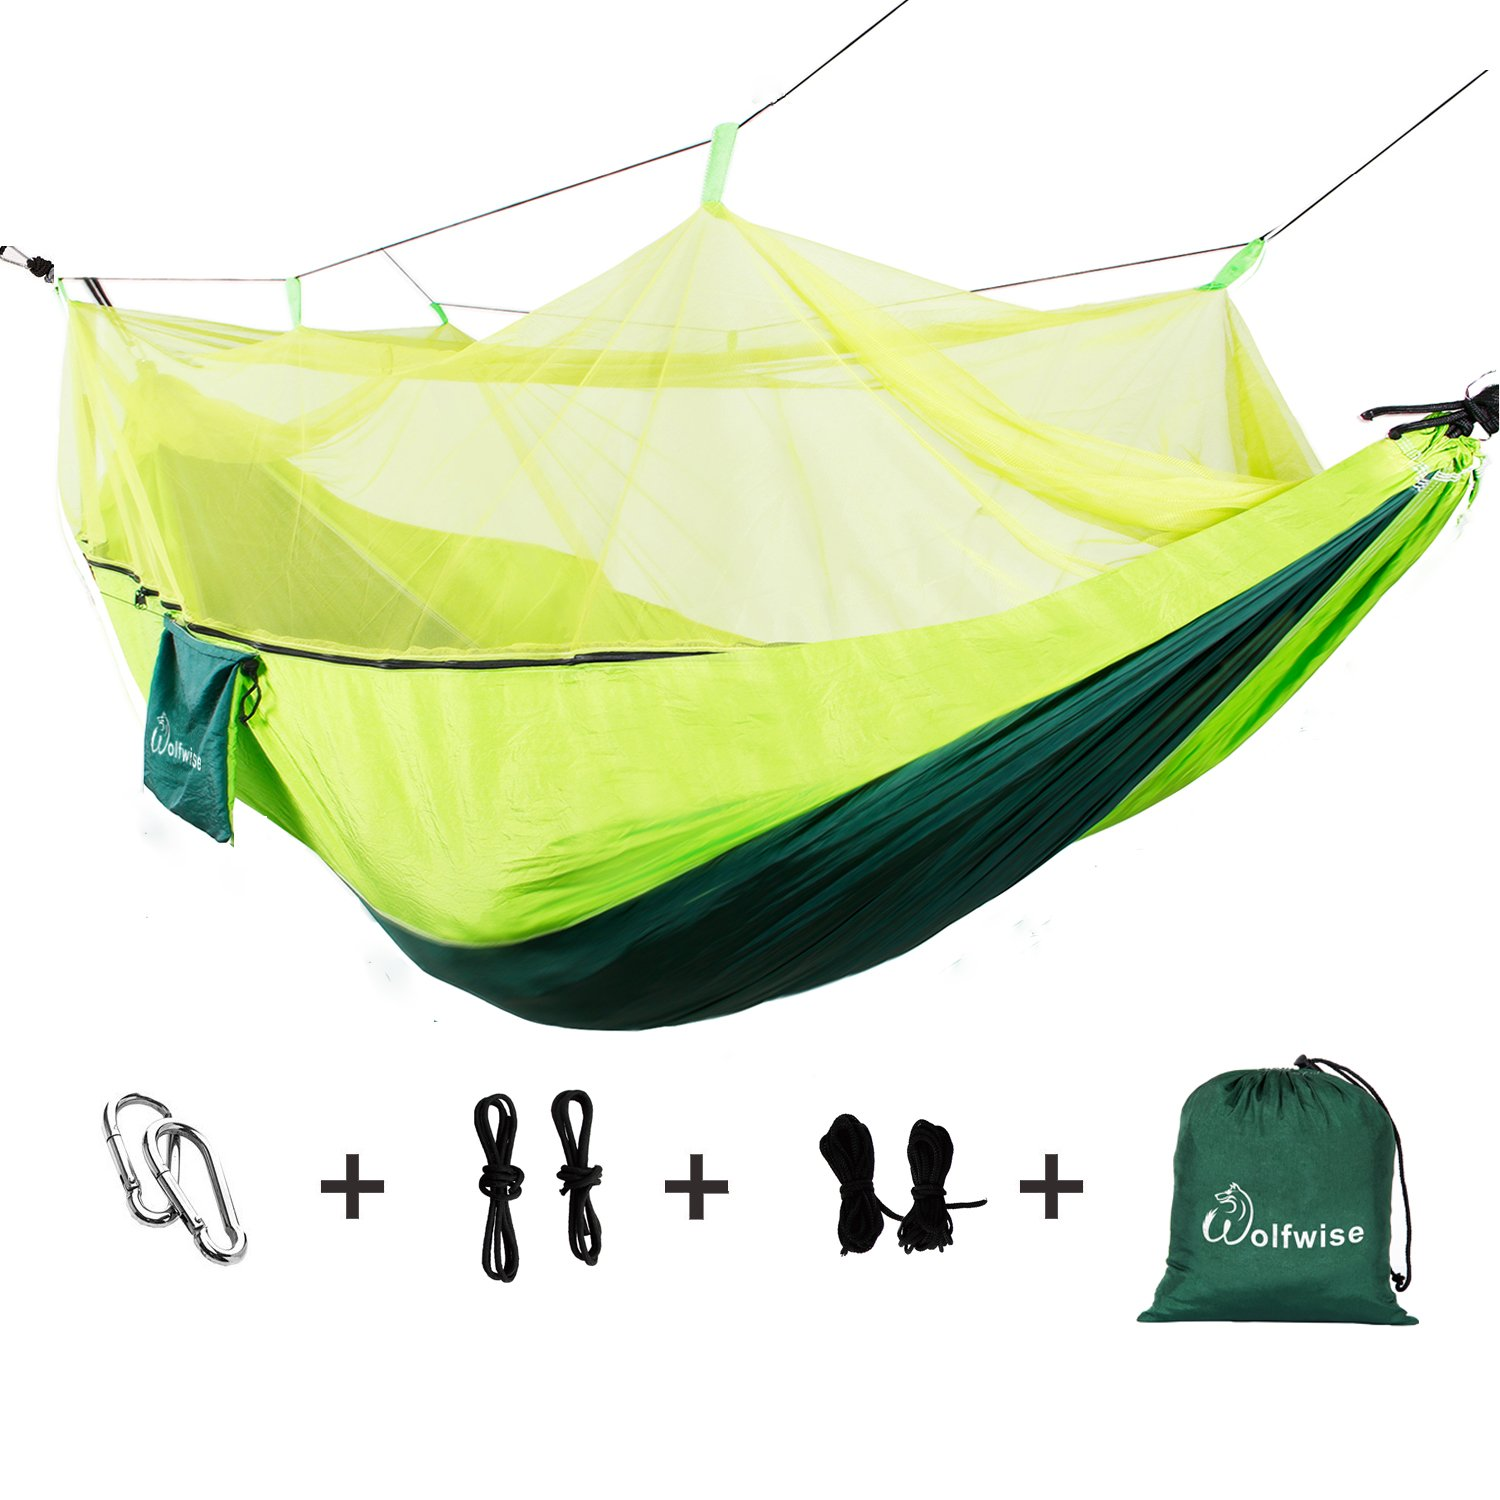 wolfwise超軽量ポータブルプロフェッショナル通気性2-personキャンプHammocks Supports up 400lbs B01K4J35GC  mosquitoes Net Green